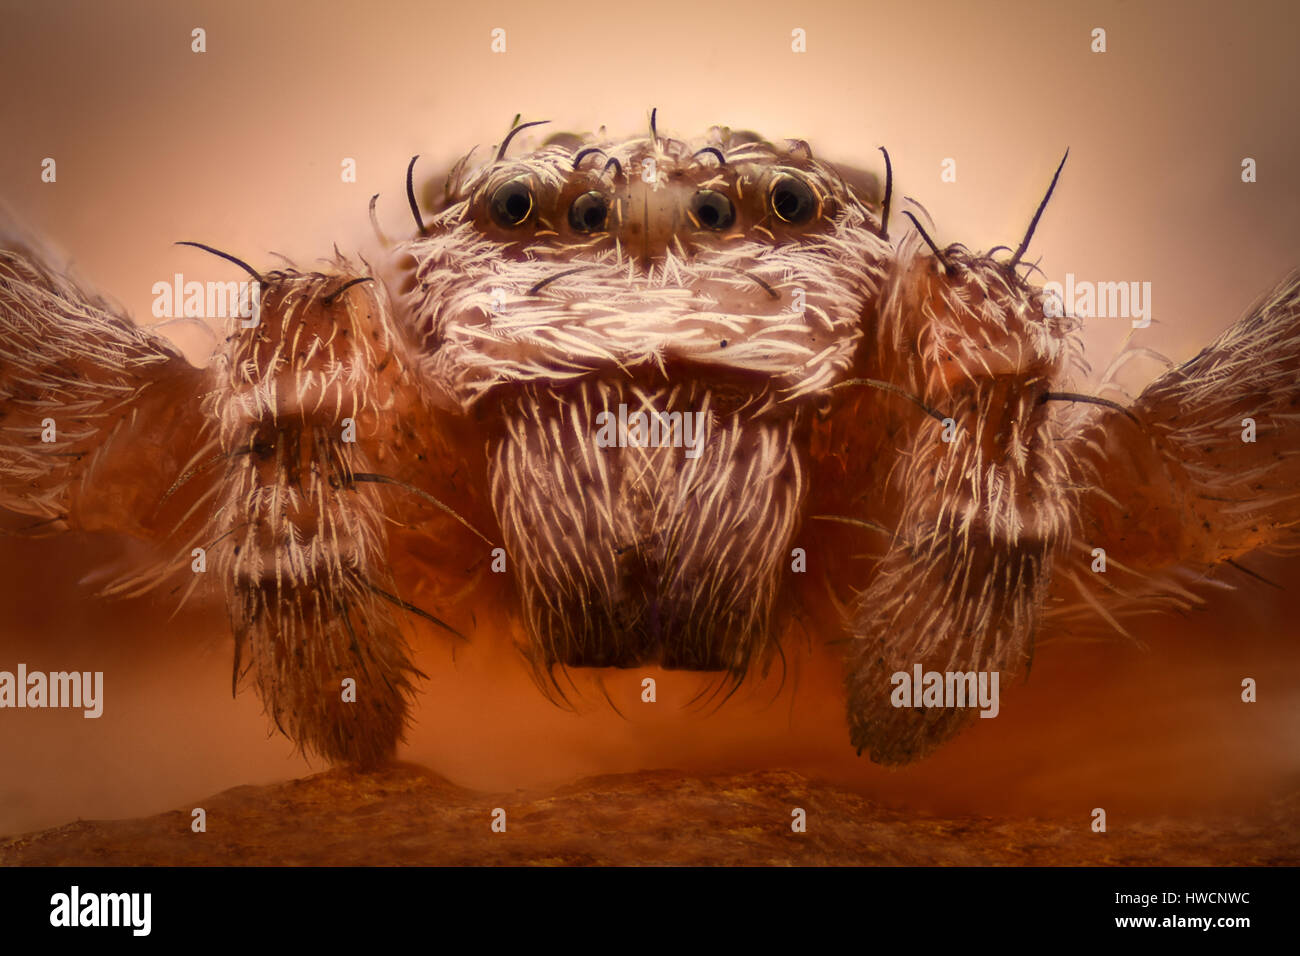 Extreme magnification - Crab spider head - Stock Image